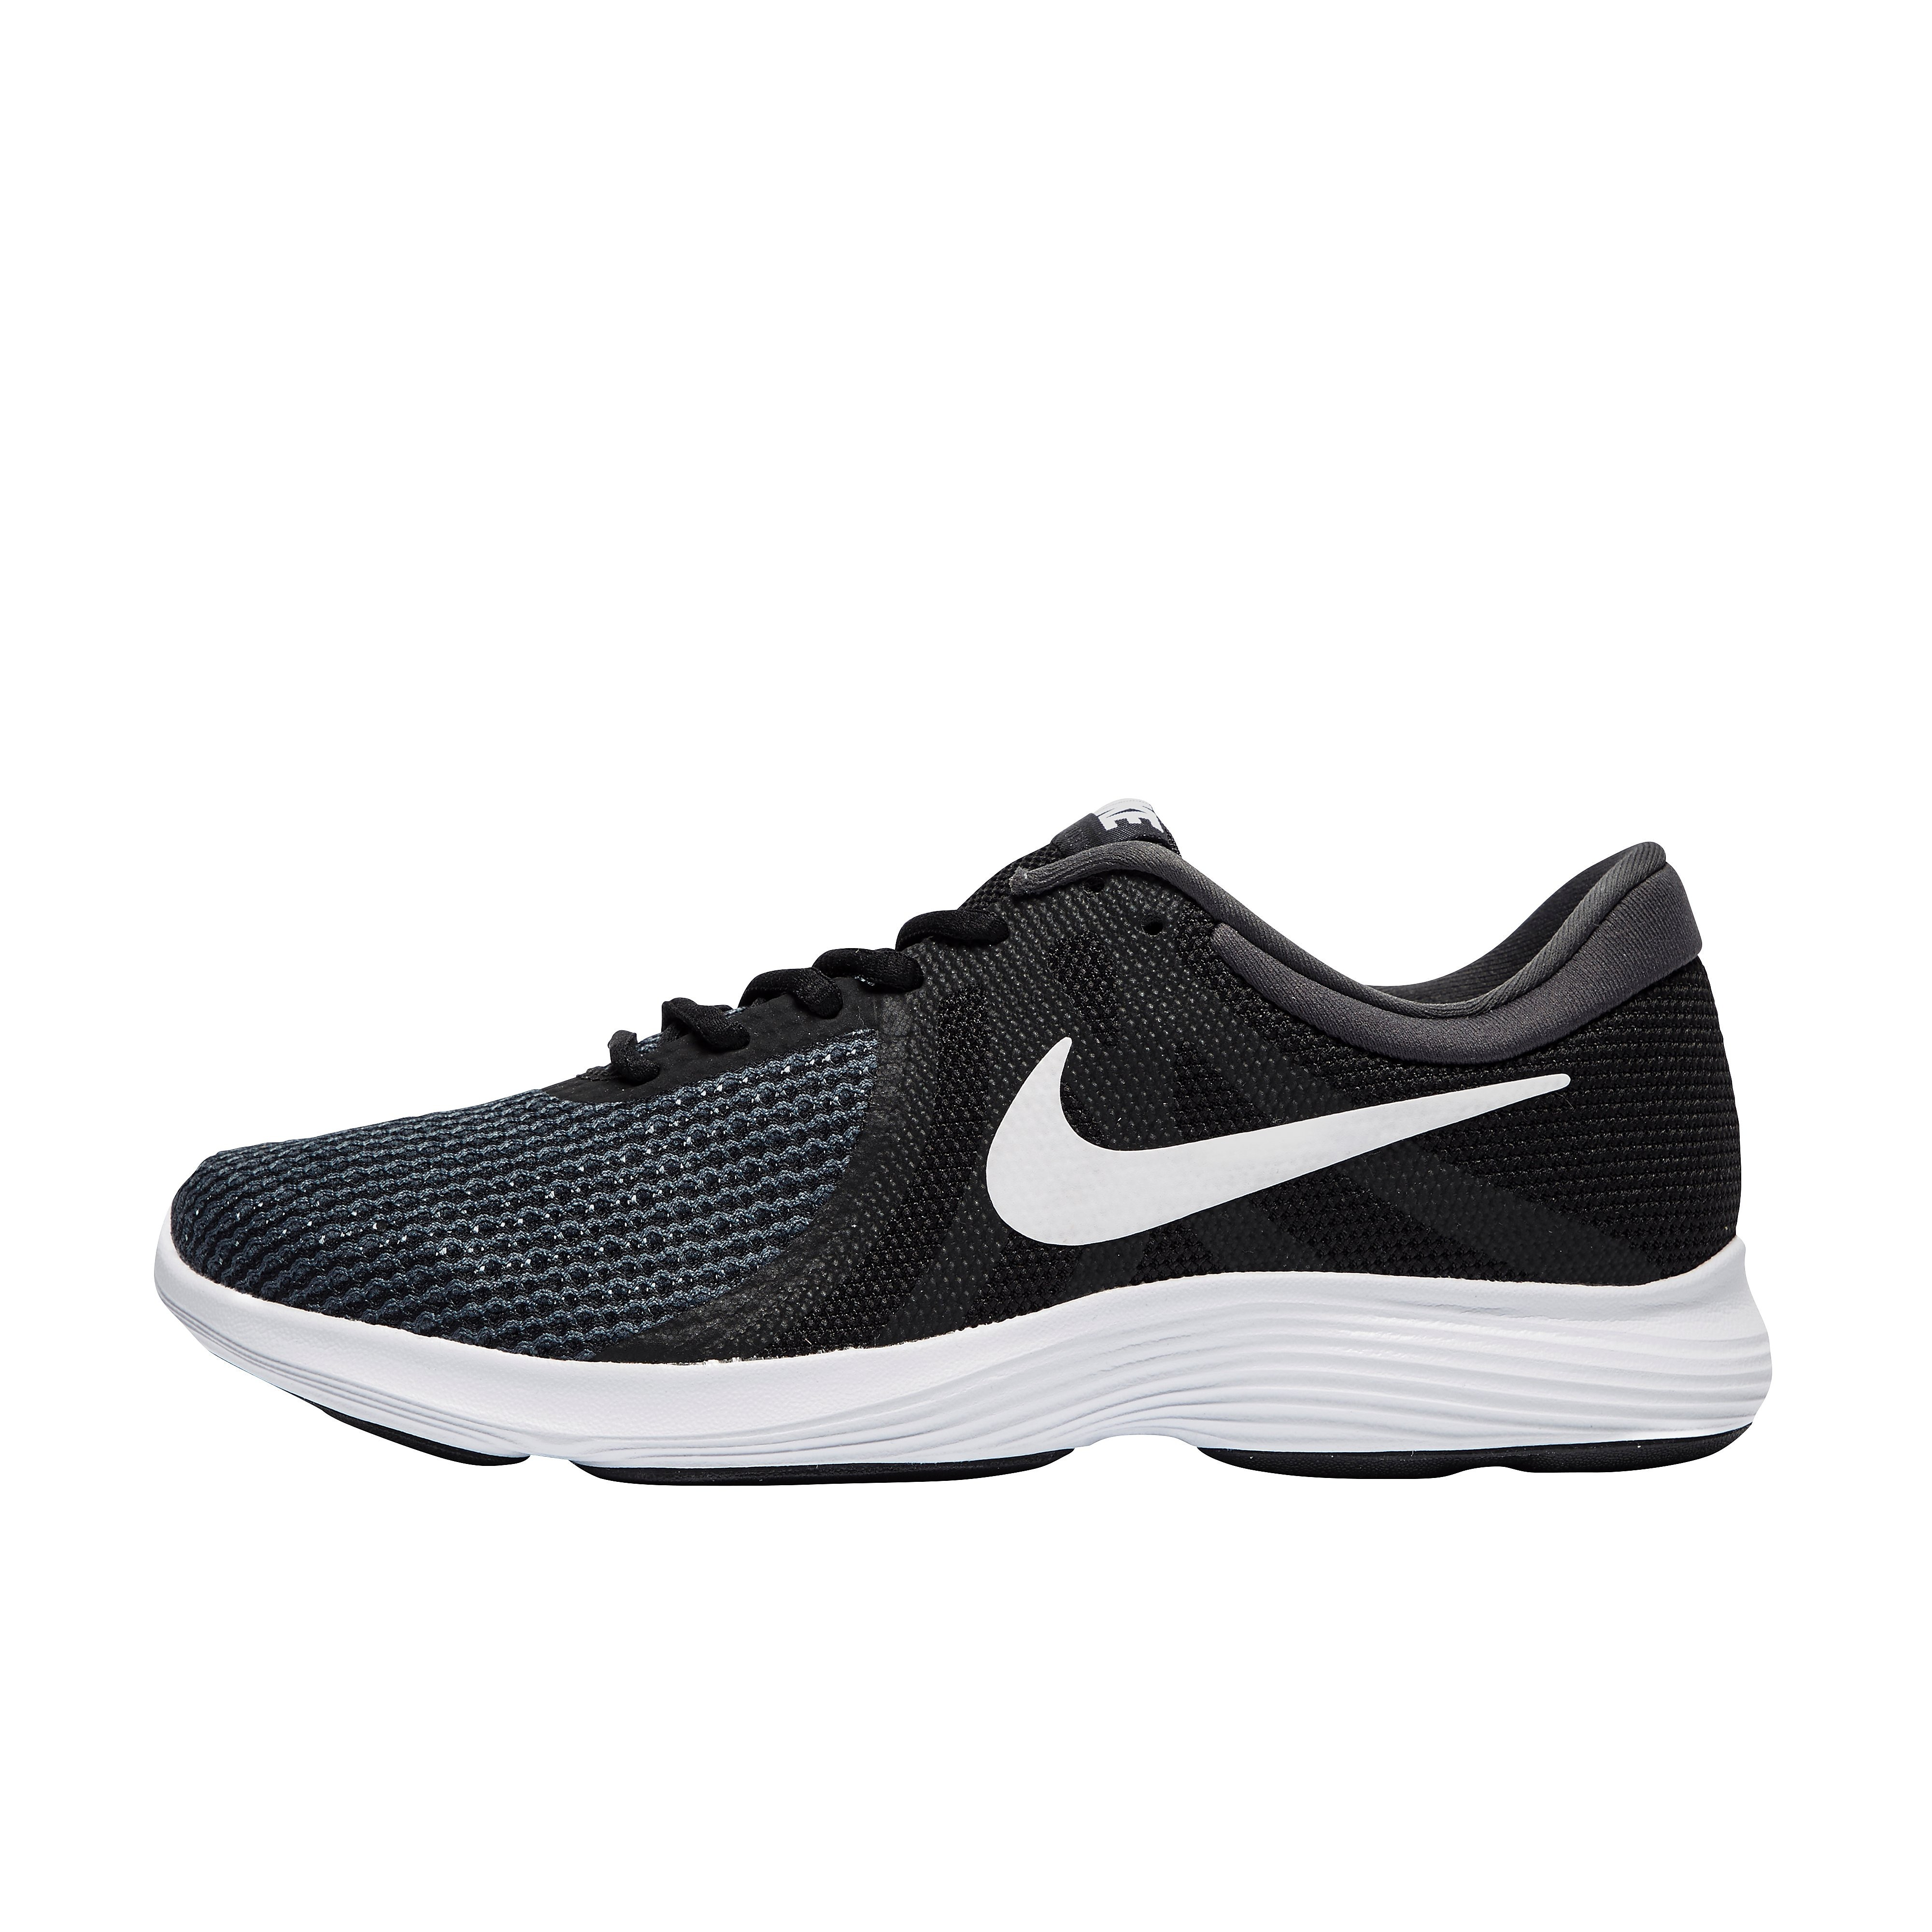 Nike Revolution 4 EU Men's Neutral Running Shoes